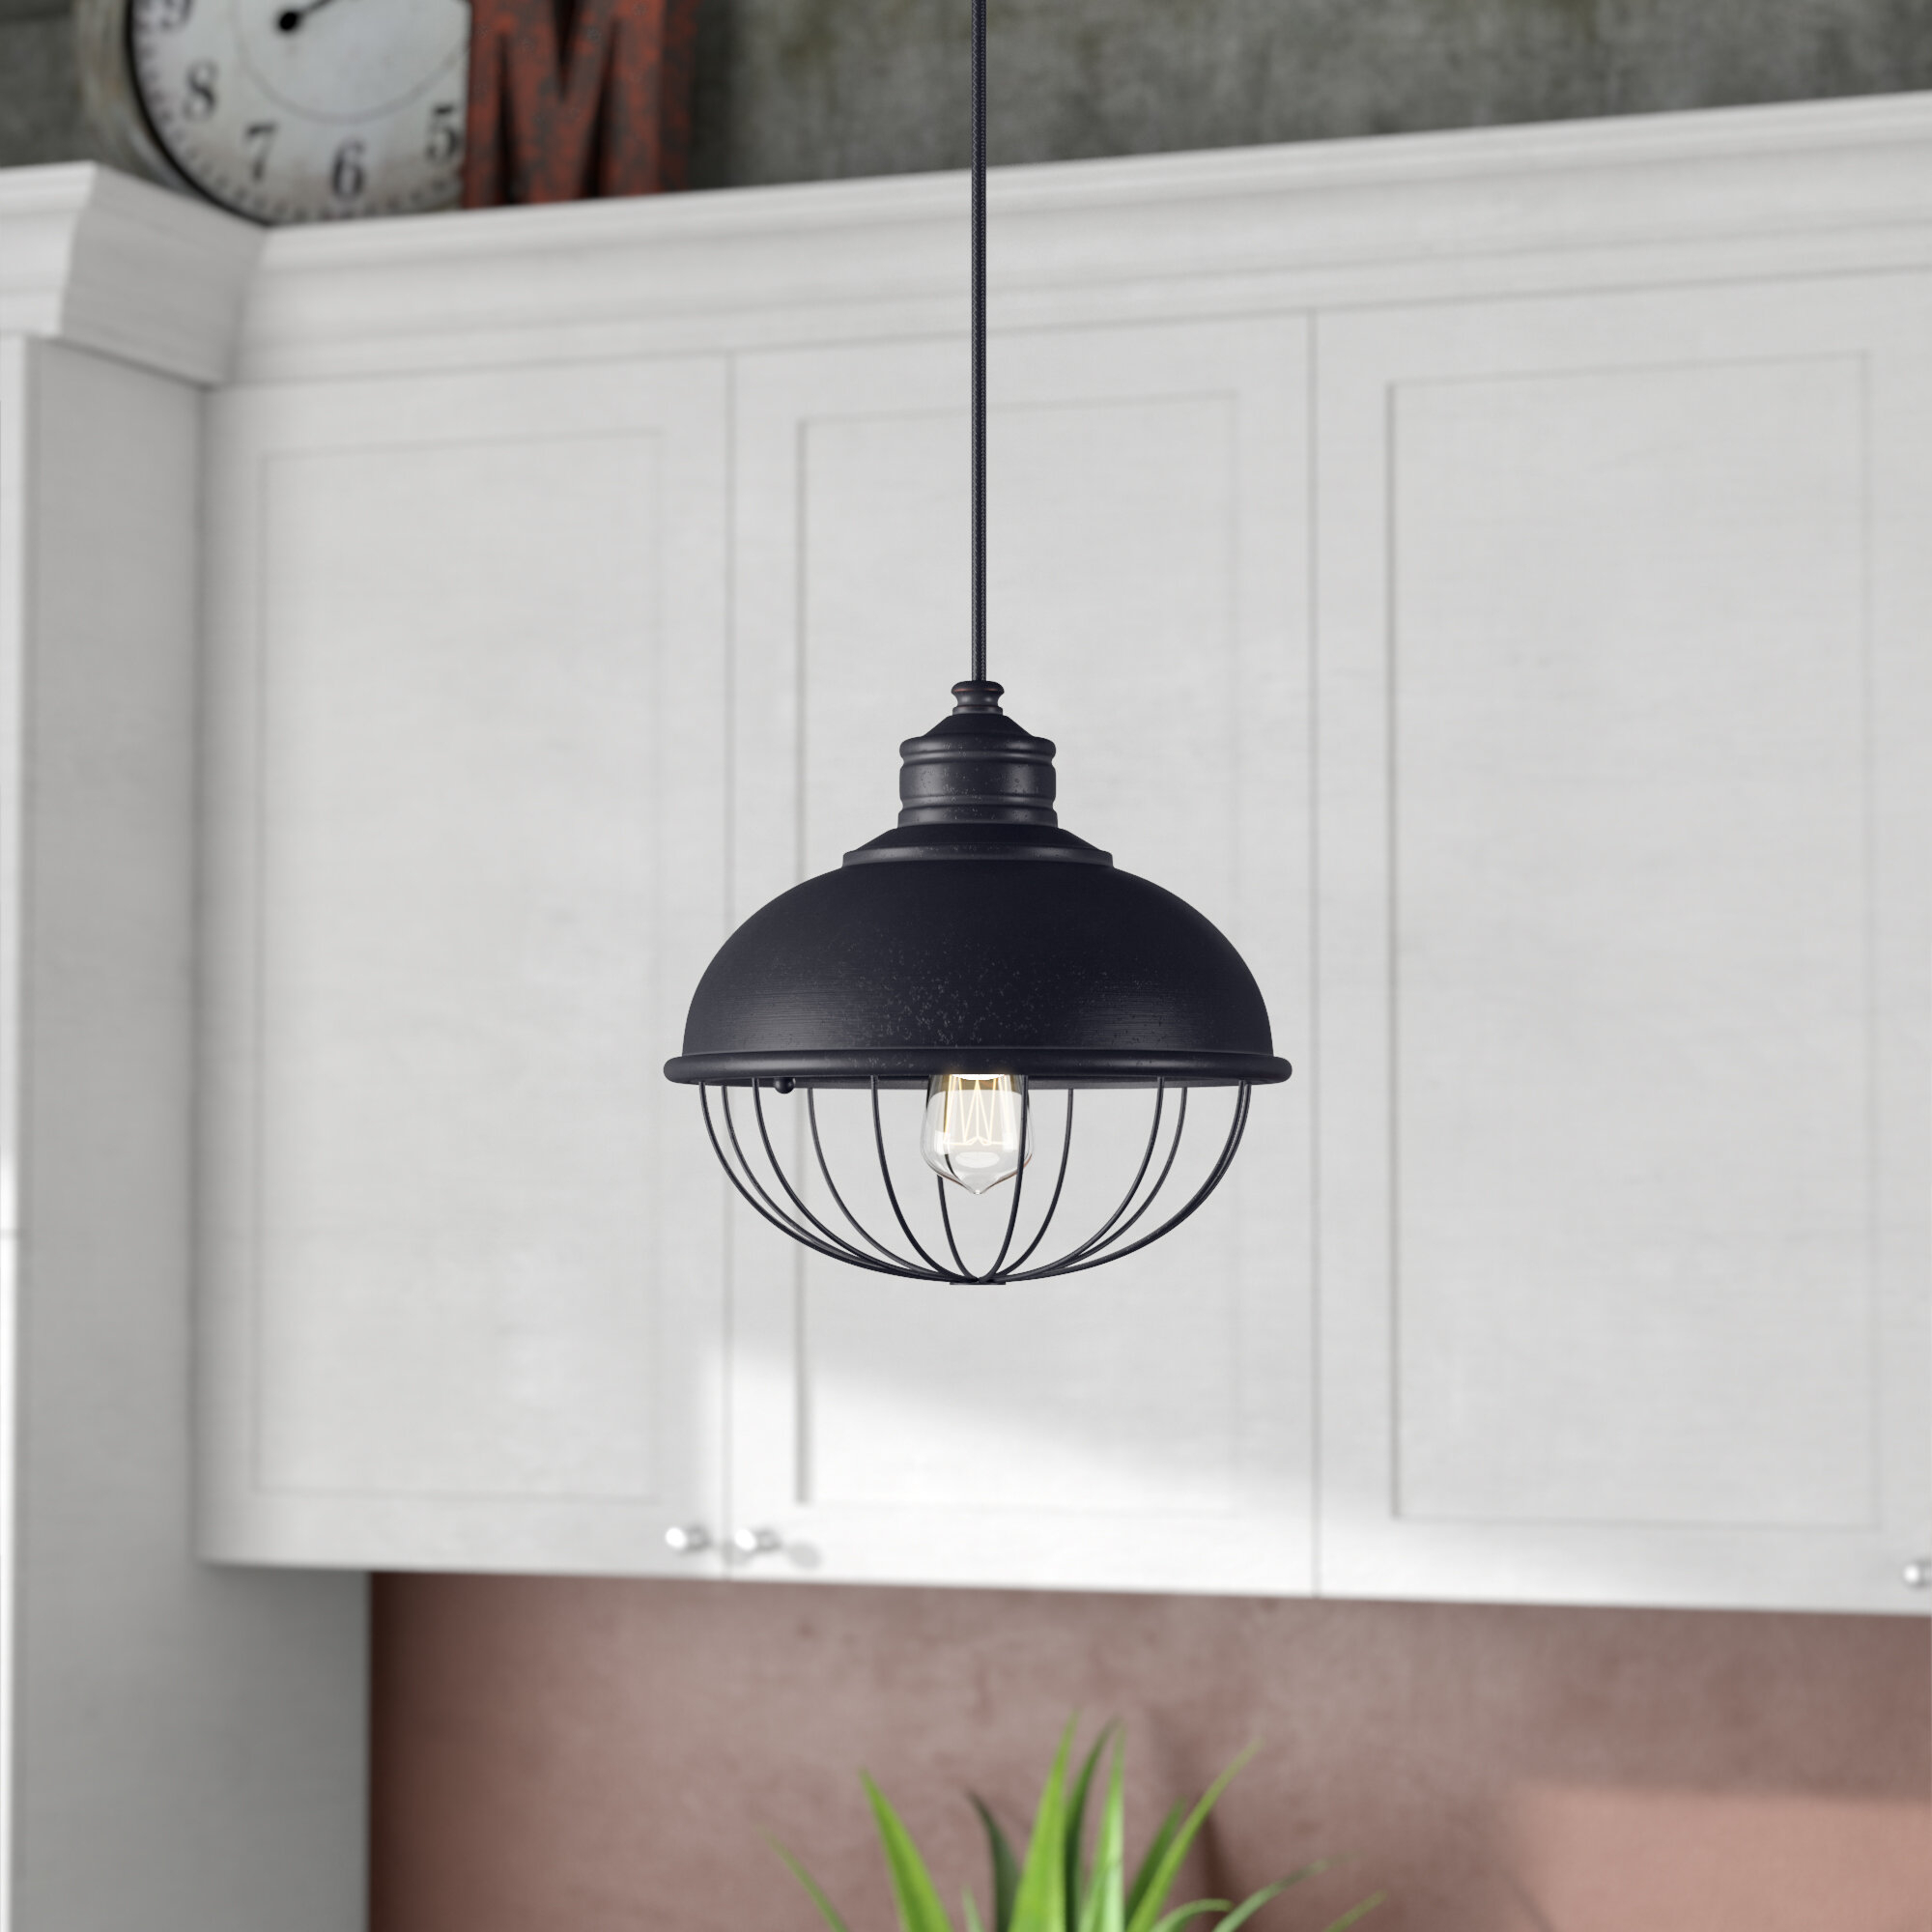 Williston Forge Abordale 1-Light Dome Pendant regarding Abordale 1-Light Single Dome Pendants (Image 30 of 30)